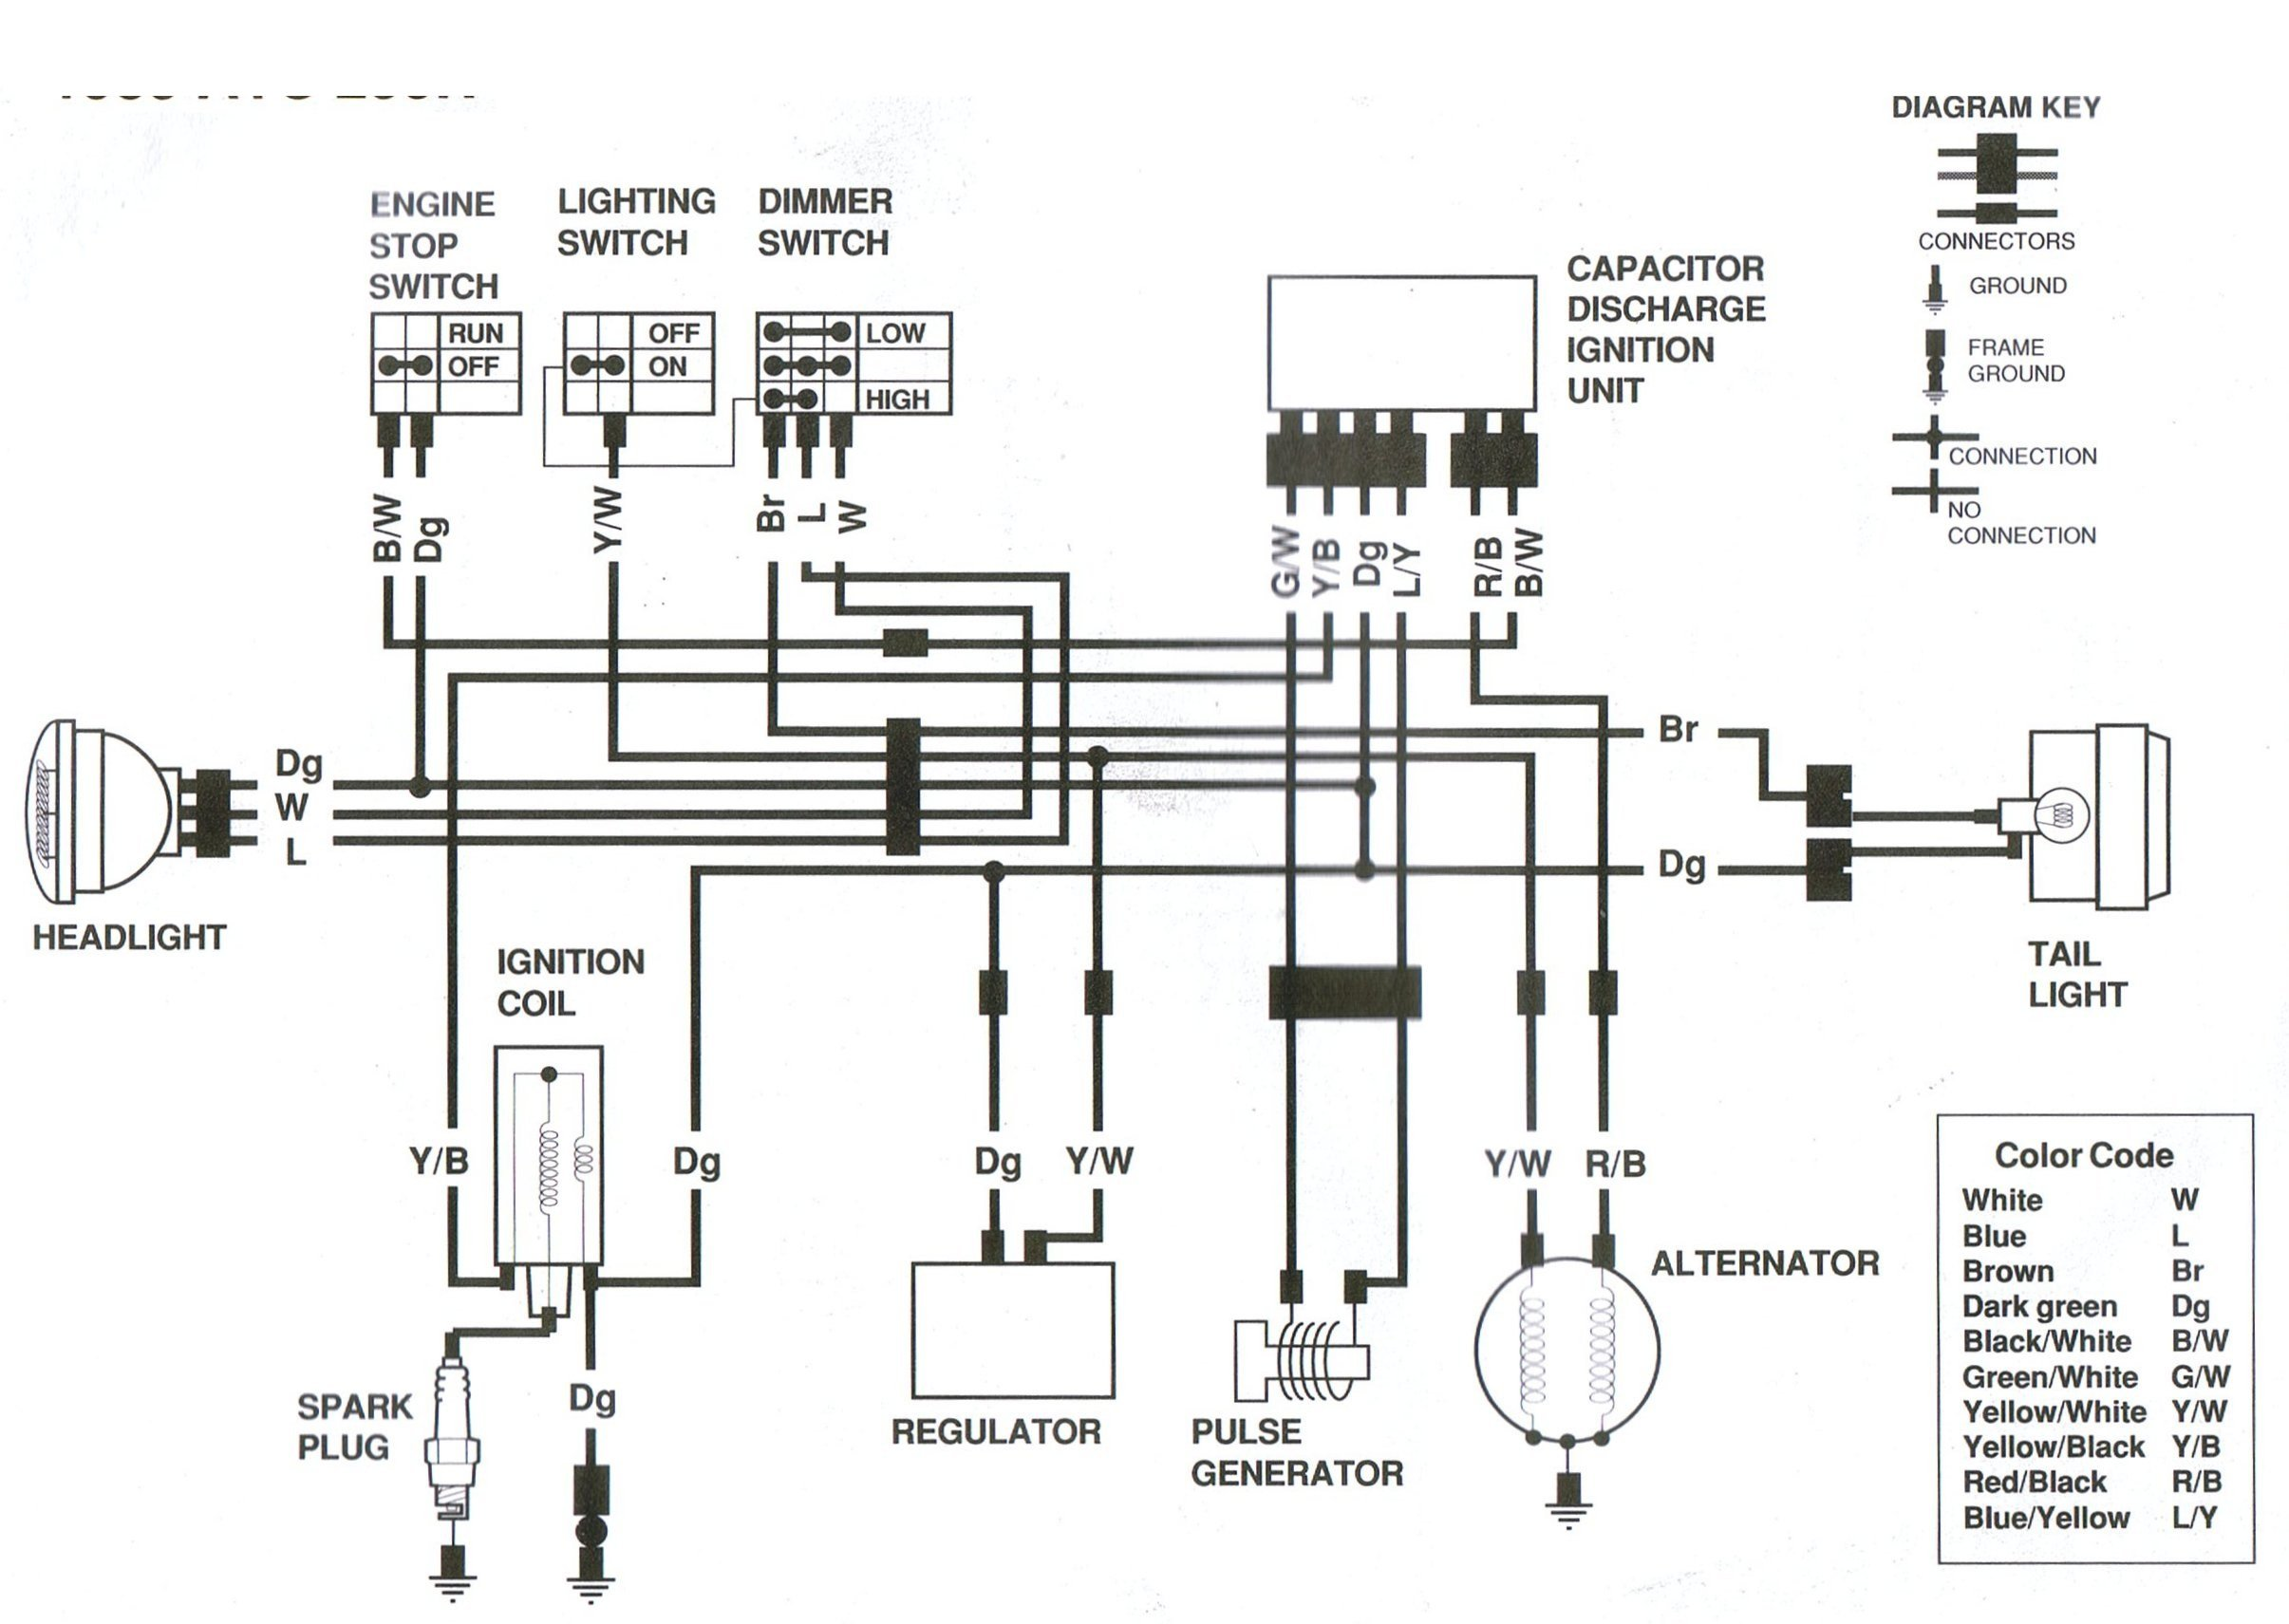 250r wiring diagram.